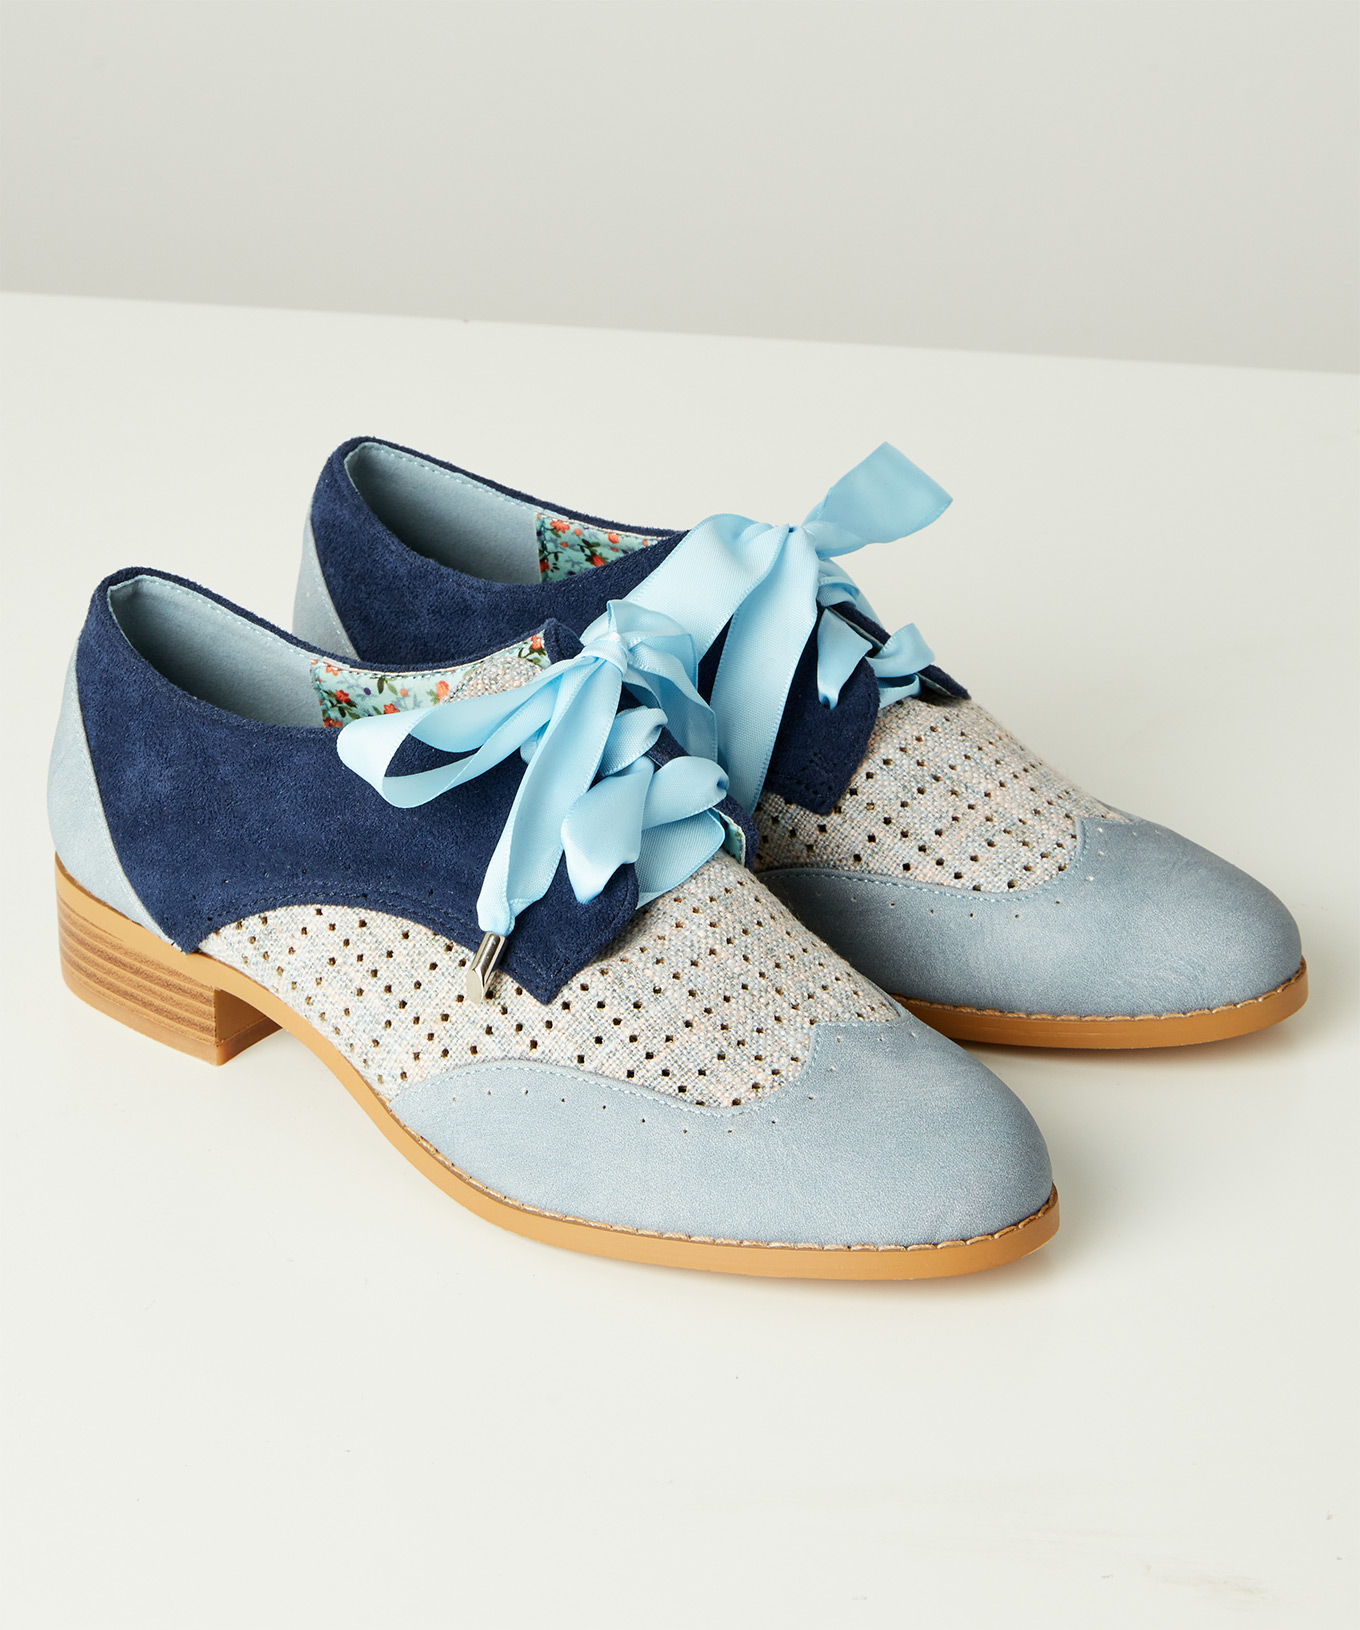 Joe Browns Womens Lace Up Summery Cut Out Brogue Shoes